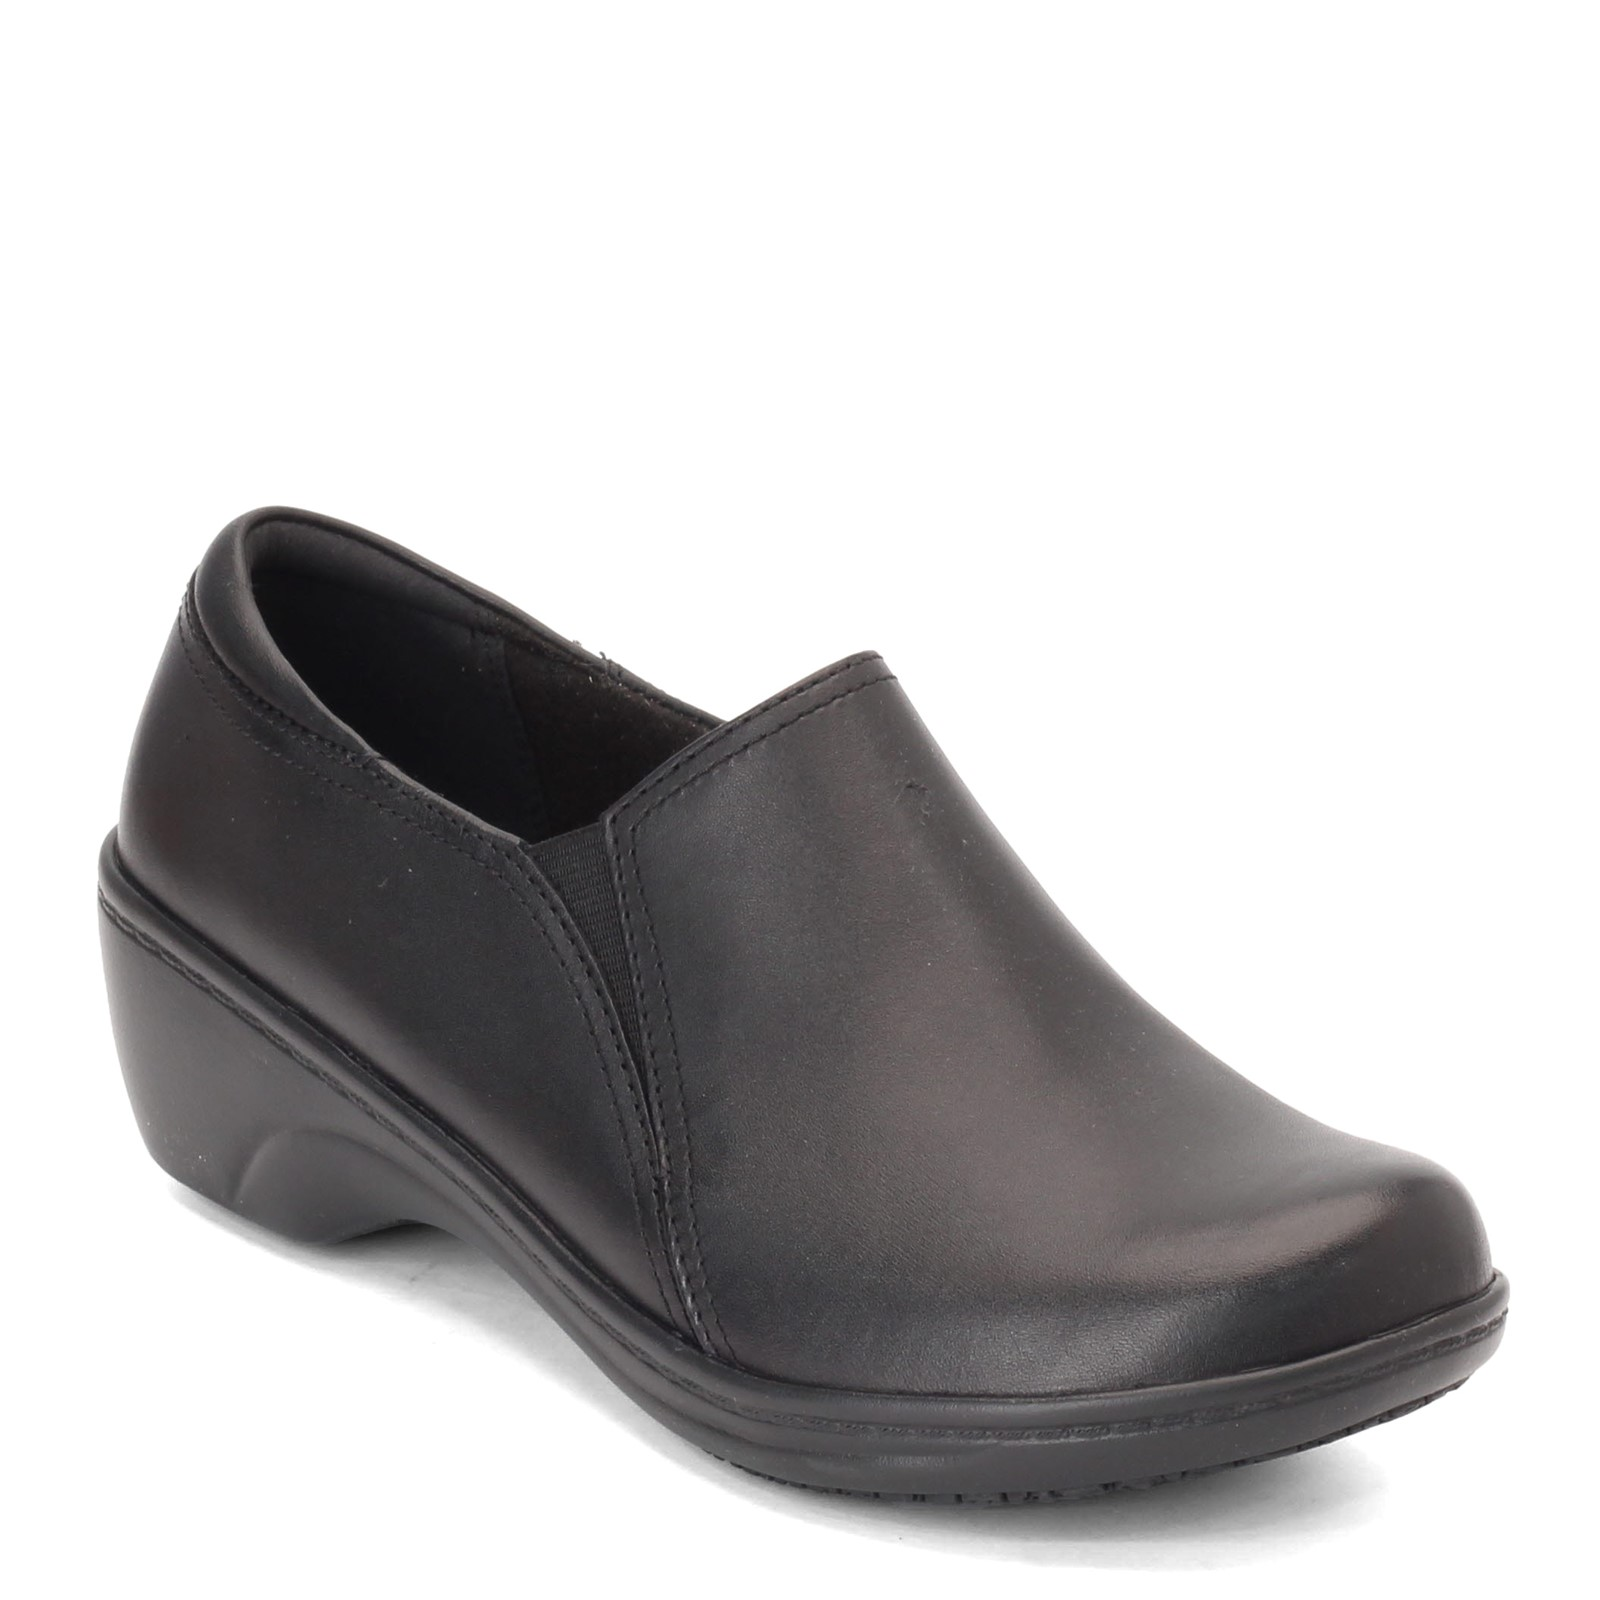 Women's Clarks, Grasp Chime Clog